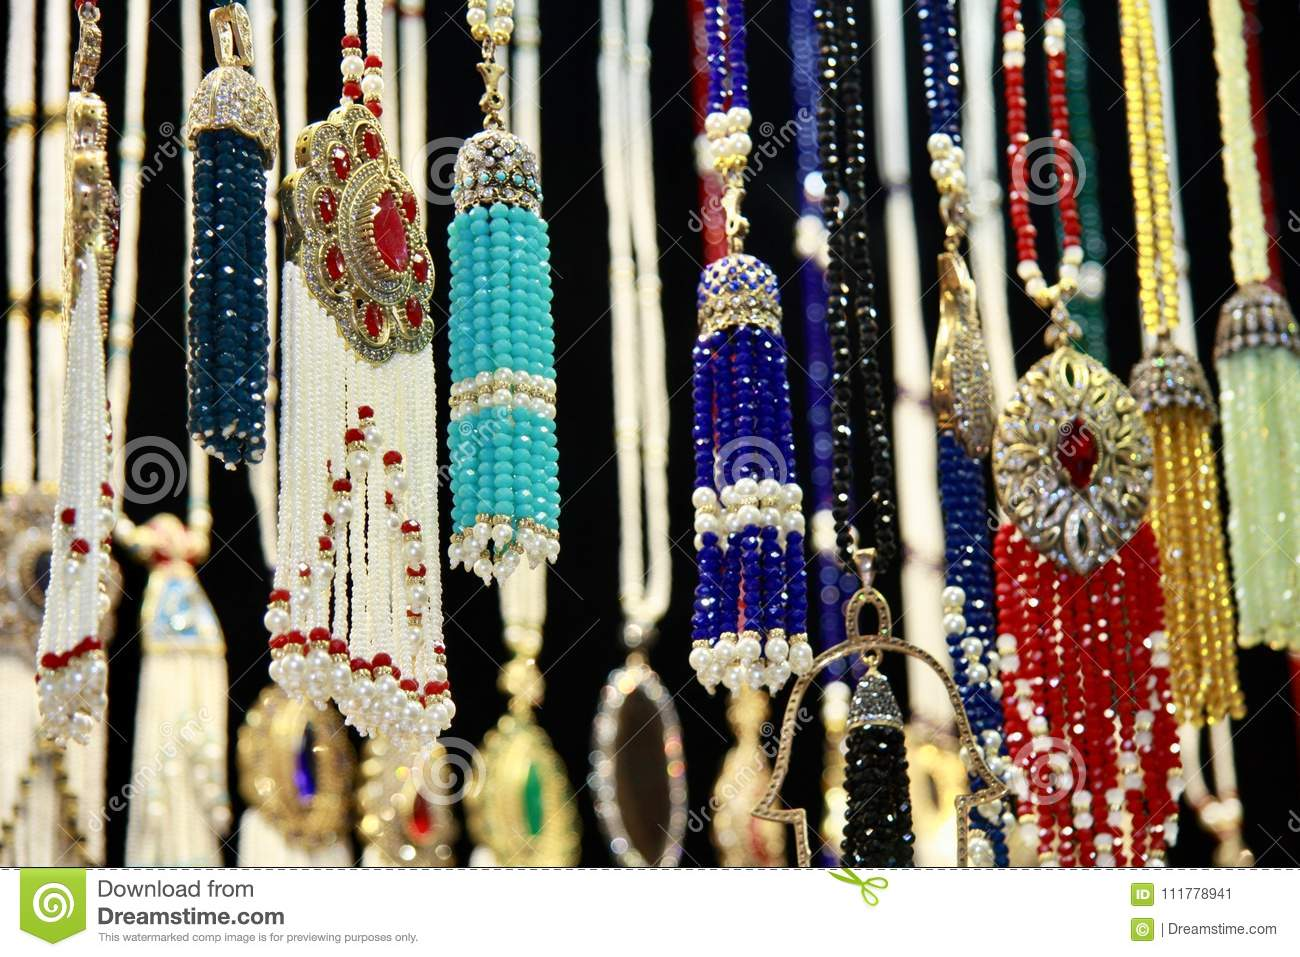 Traditional middle eastern jevellery on Grand Bazaar, Istanbul, Turkey.